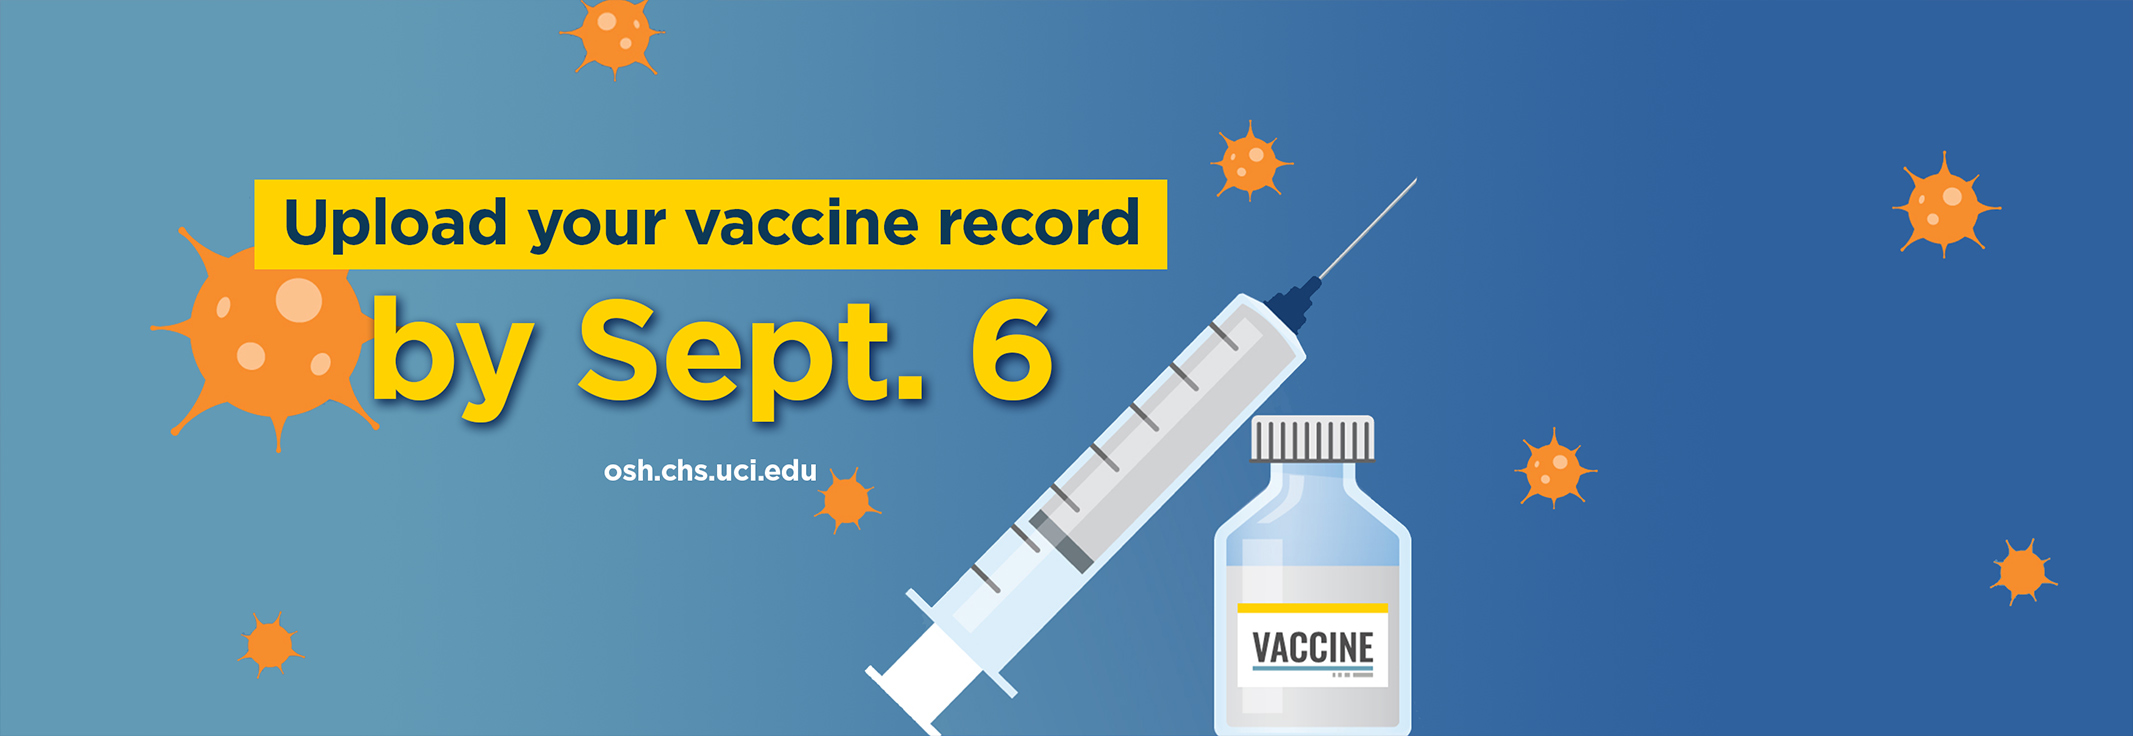 Needle and vaccine vial with text that says Upload your vaccine record by Sept. 6 osh.chs.uci.edu